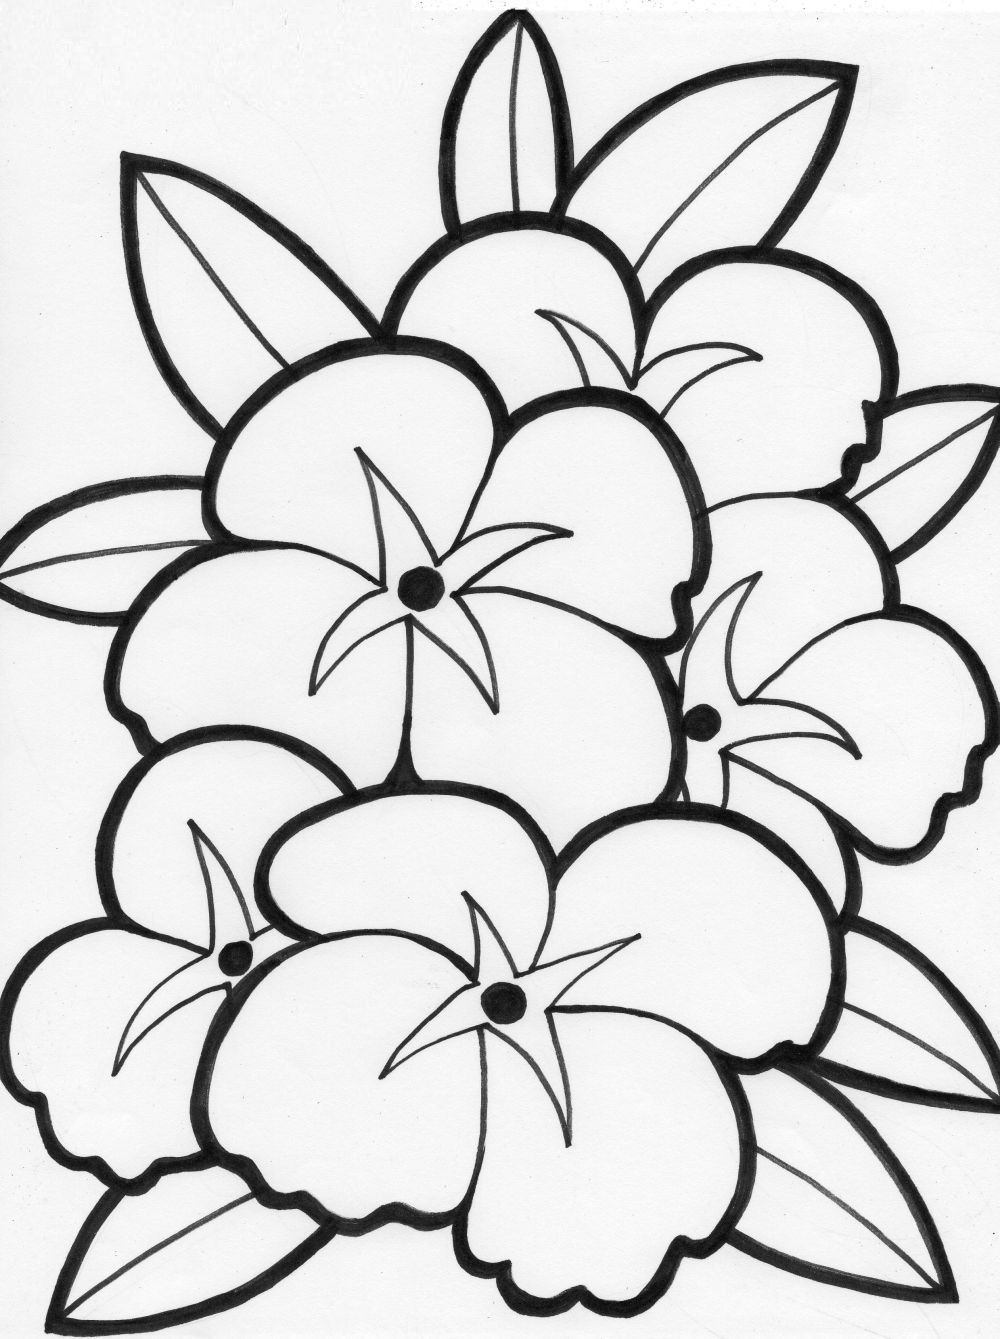 Coloring Pages Of Flowers For Teenagers Difficult Only Coloring Pages Printable Flower Coloring Pages Flower Coloring Sheets Mandala Coloring Pages